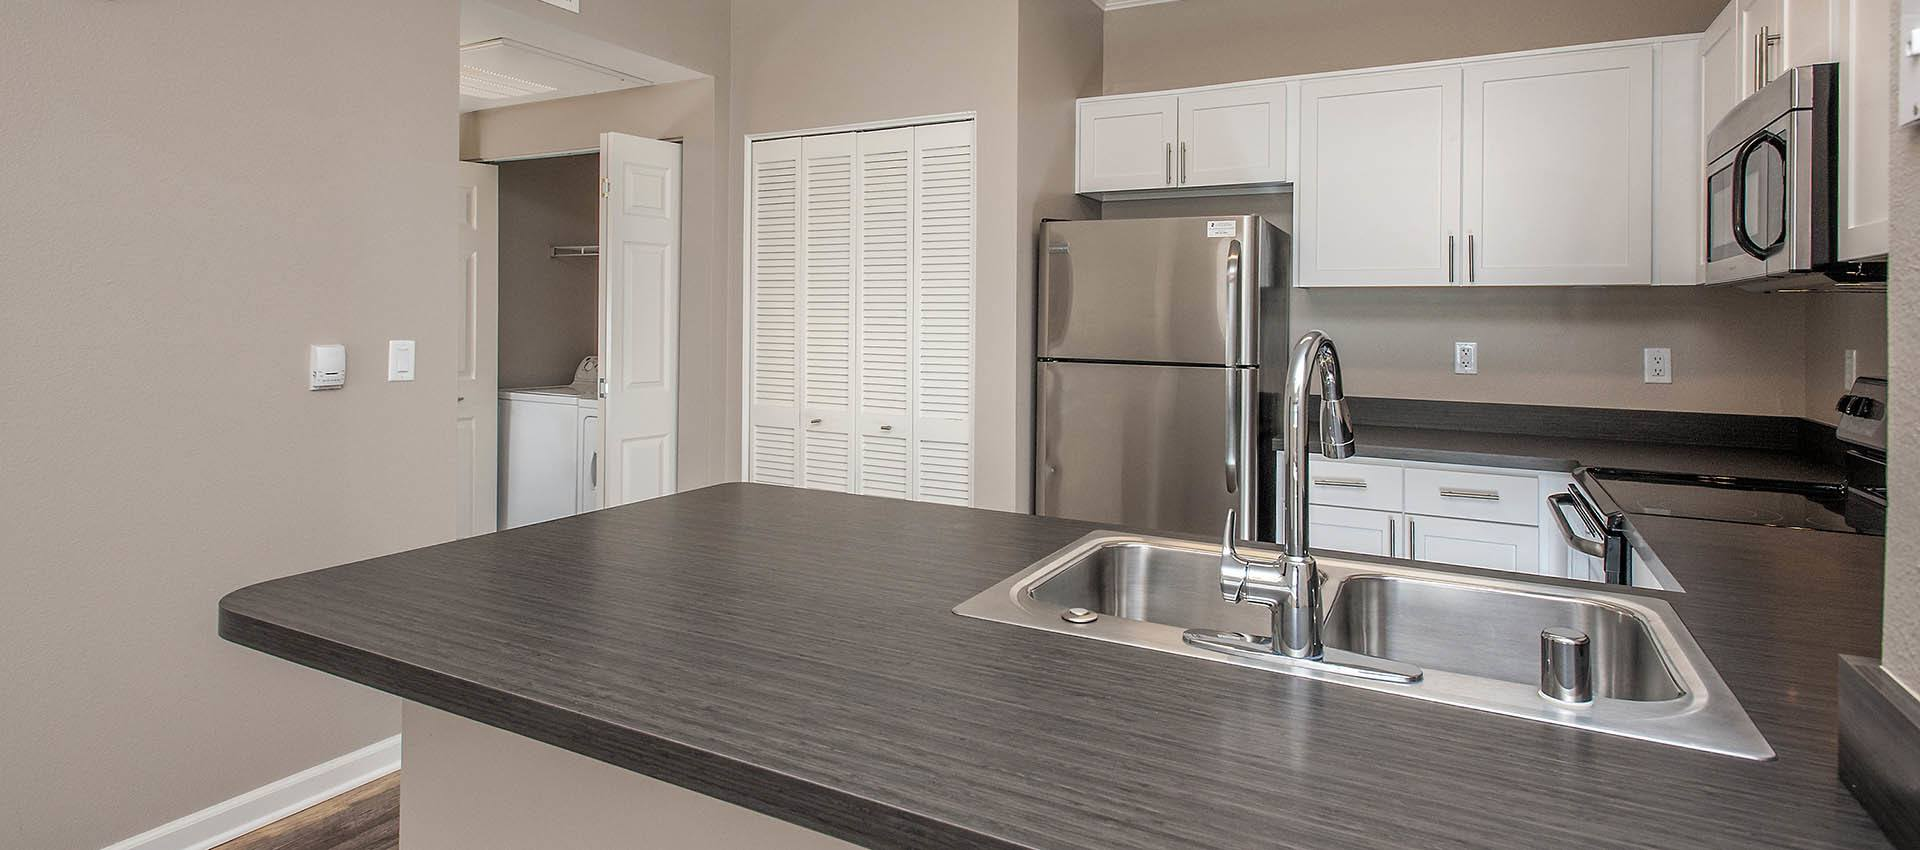 upgraded kitchen at The Vintage at South Meadows Condominium Rentals in Reno